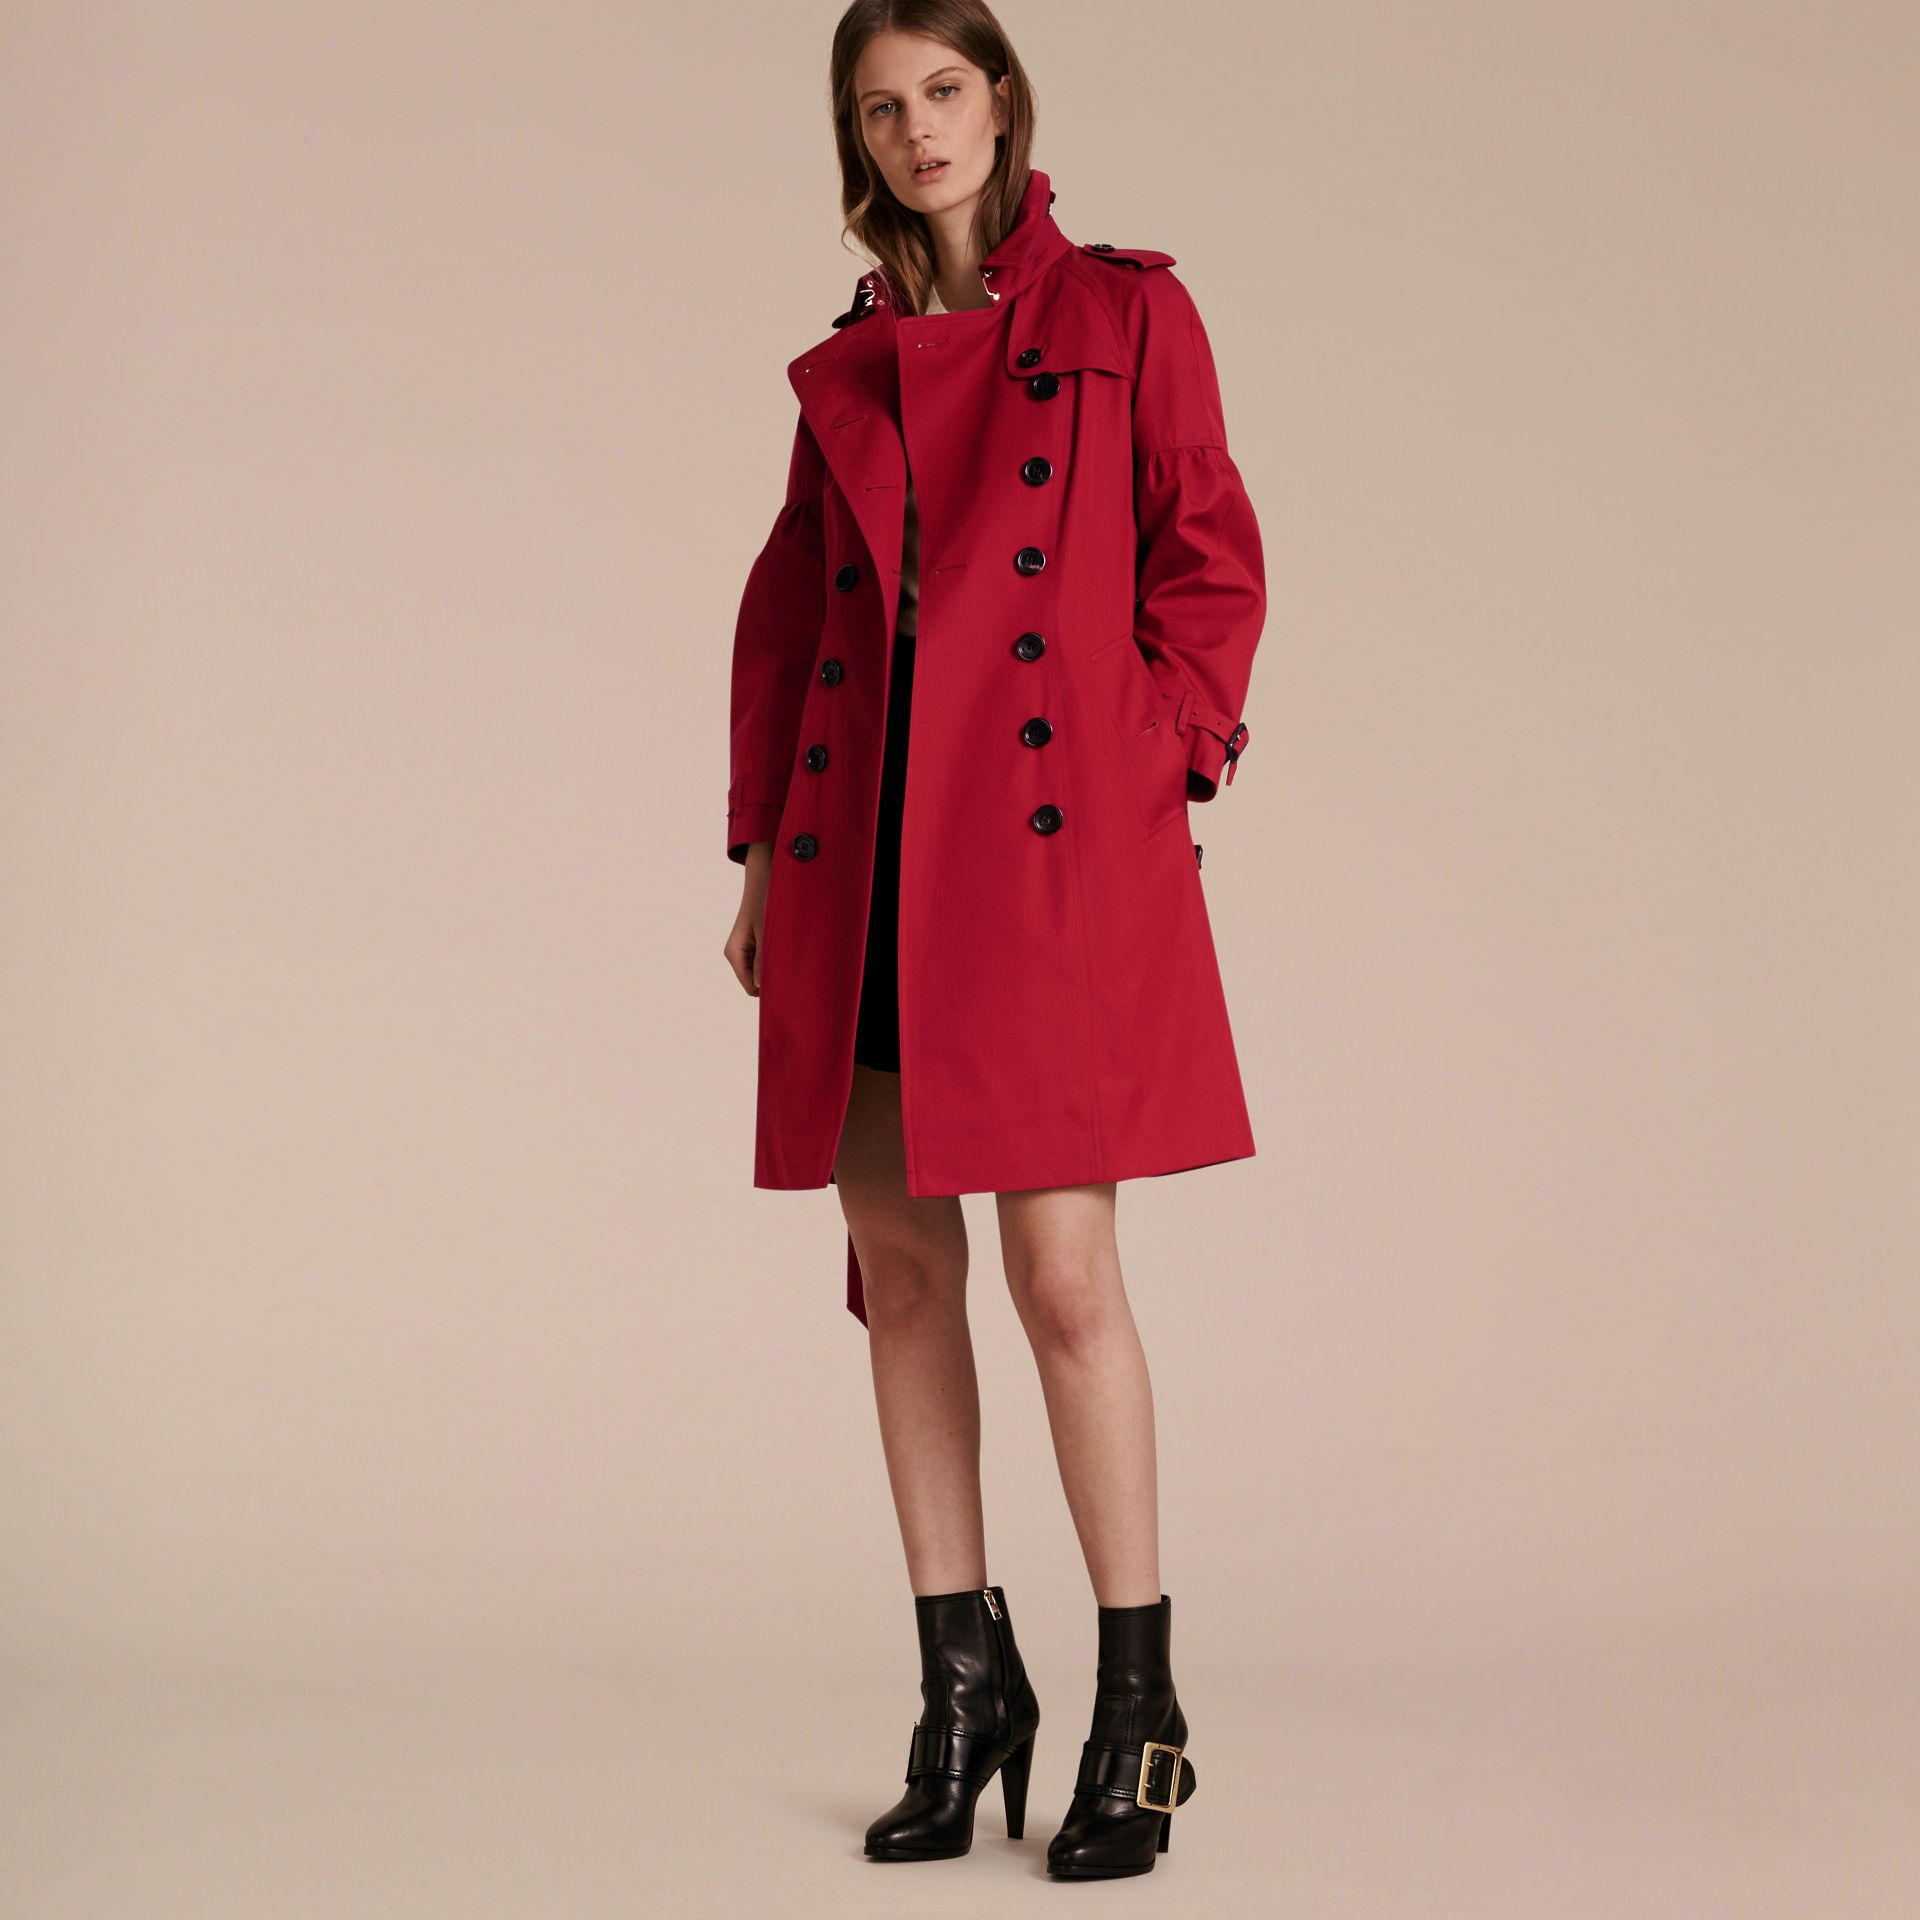 Parade red Cotton Gabardine Trench Coat with Puff Sleeves Parade Red - gallery image 6